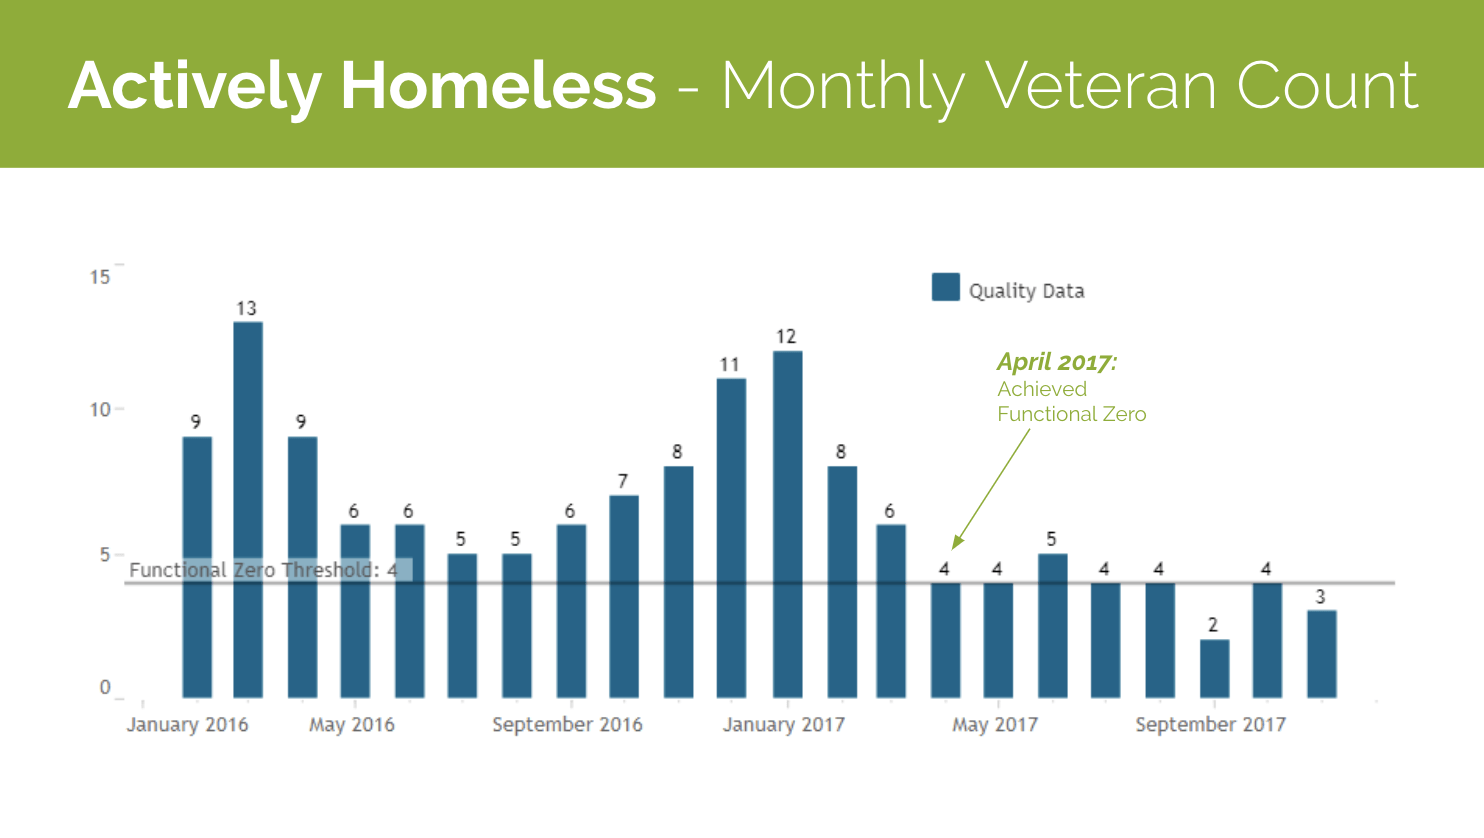 Actively Homeless Monthly Veteran County Graph for Bergen County